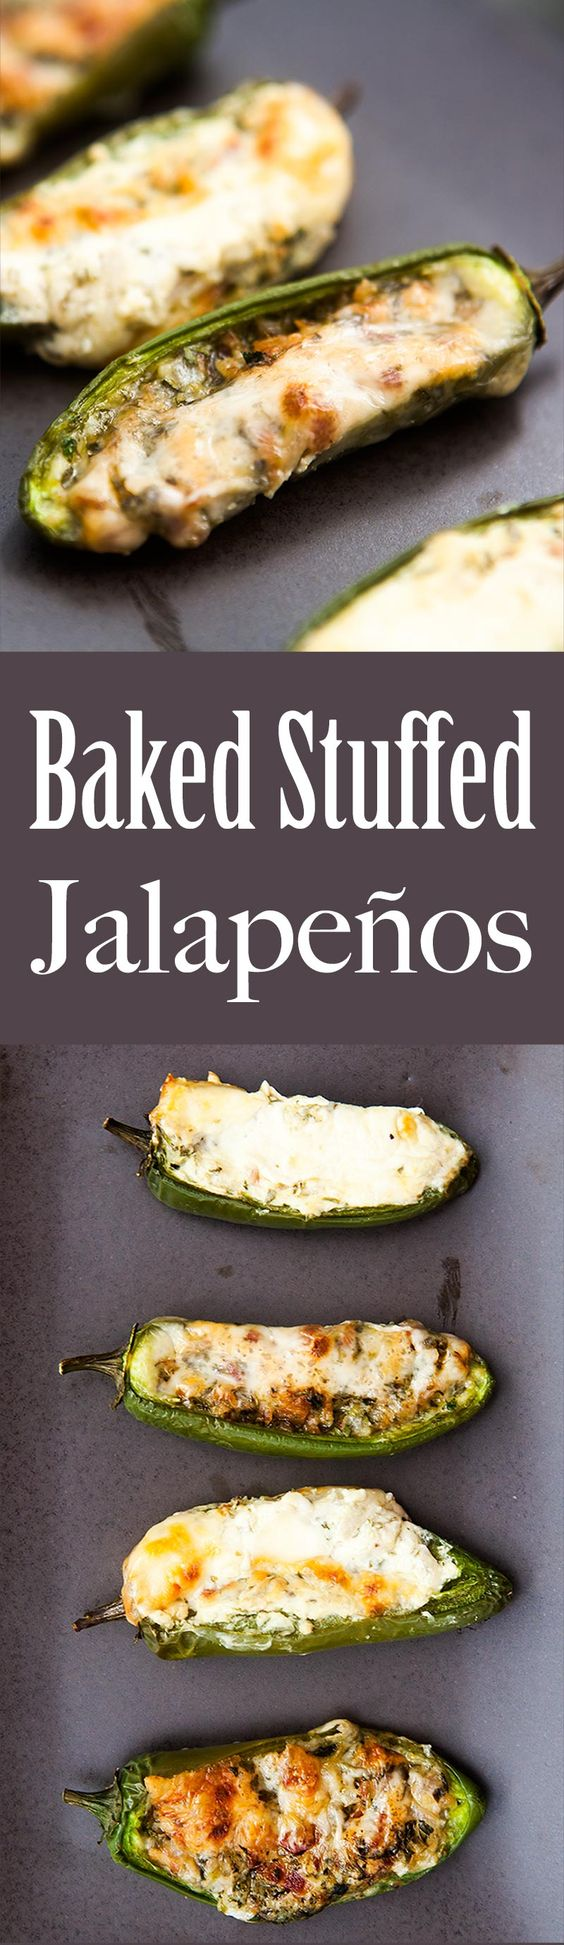 Baked Stuffed Jalapeños! Stuffed with cheese, onions, cilantro and ...